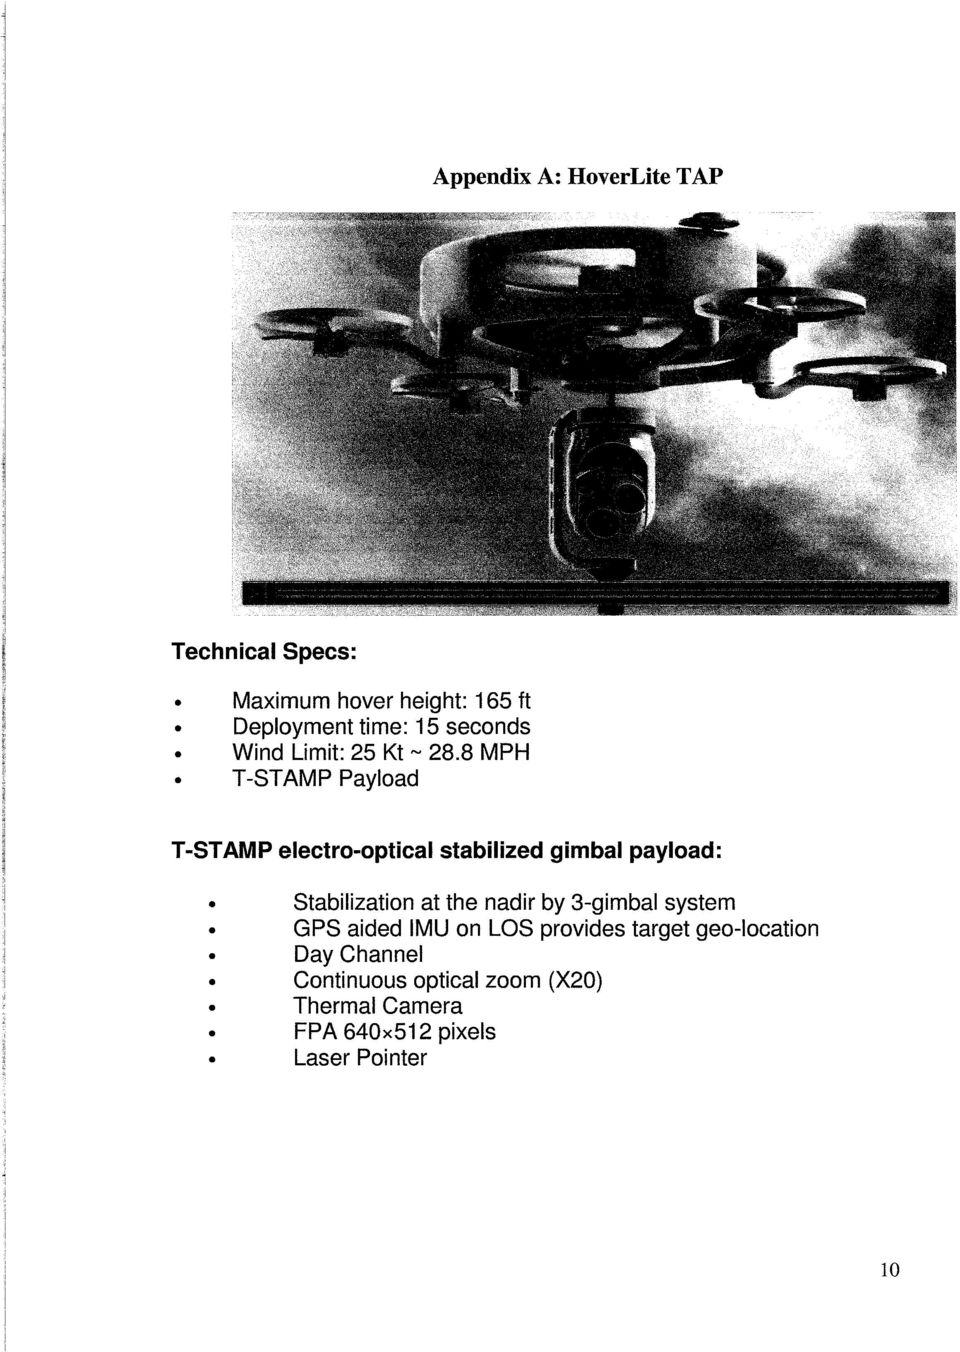 8 MPH T-STAMP Payload T-STAMP electro-optical stabilized gimbal payload: Stabilization at the